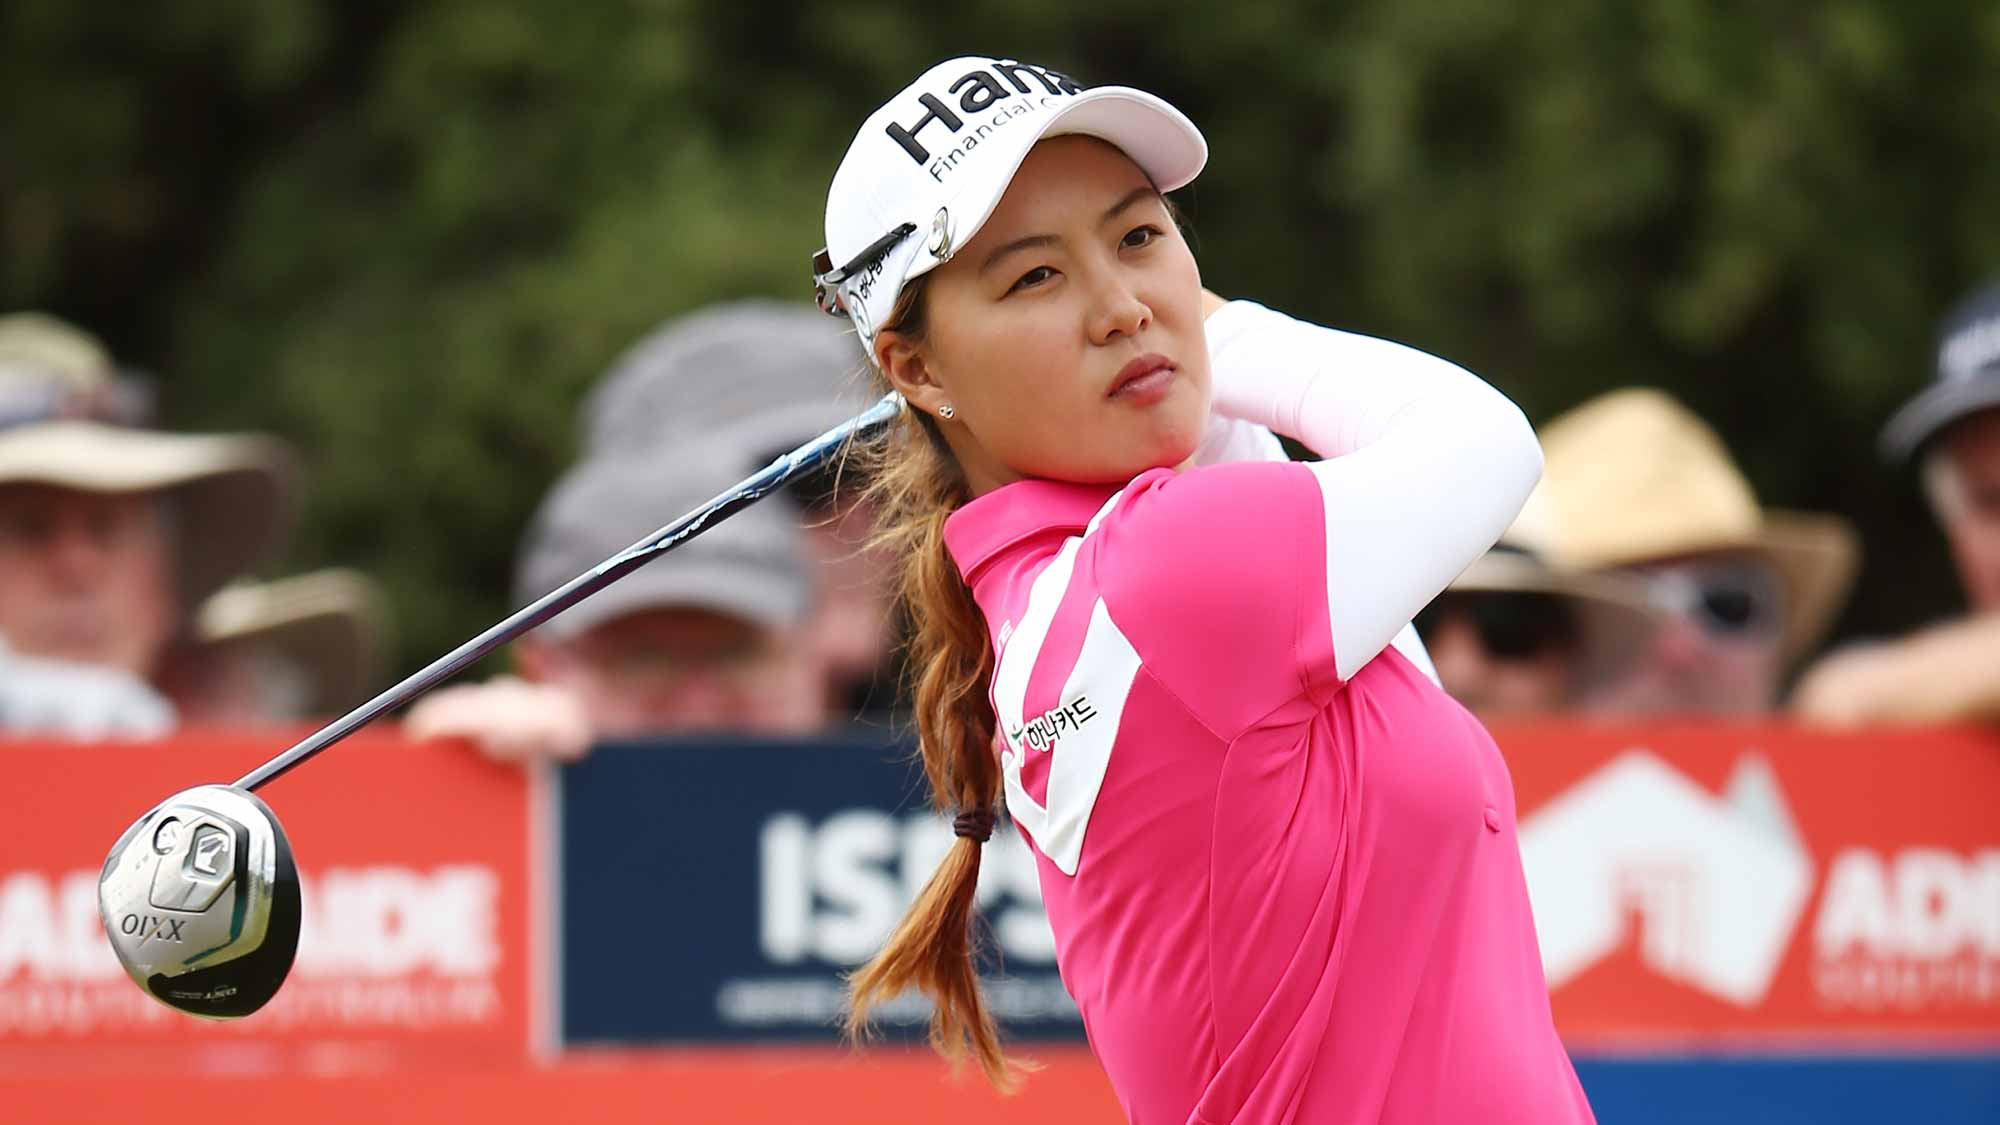 Minjee Lee of Australia competes during day two of the ISPS Handa Women's Australian Open